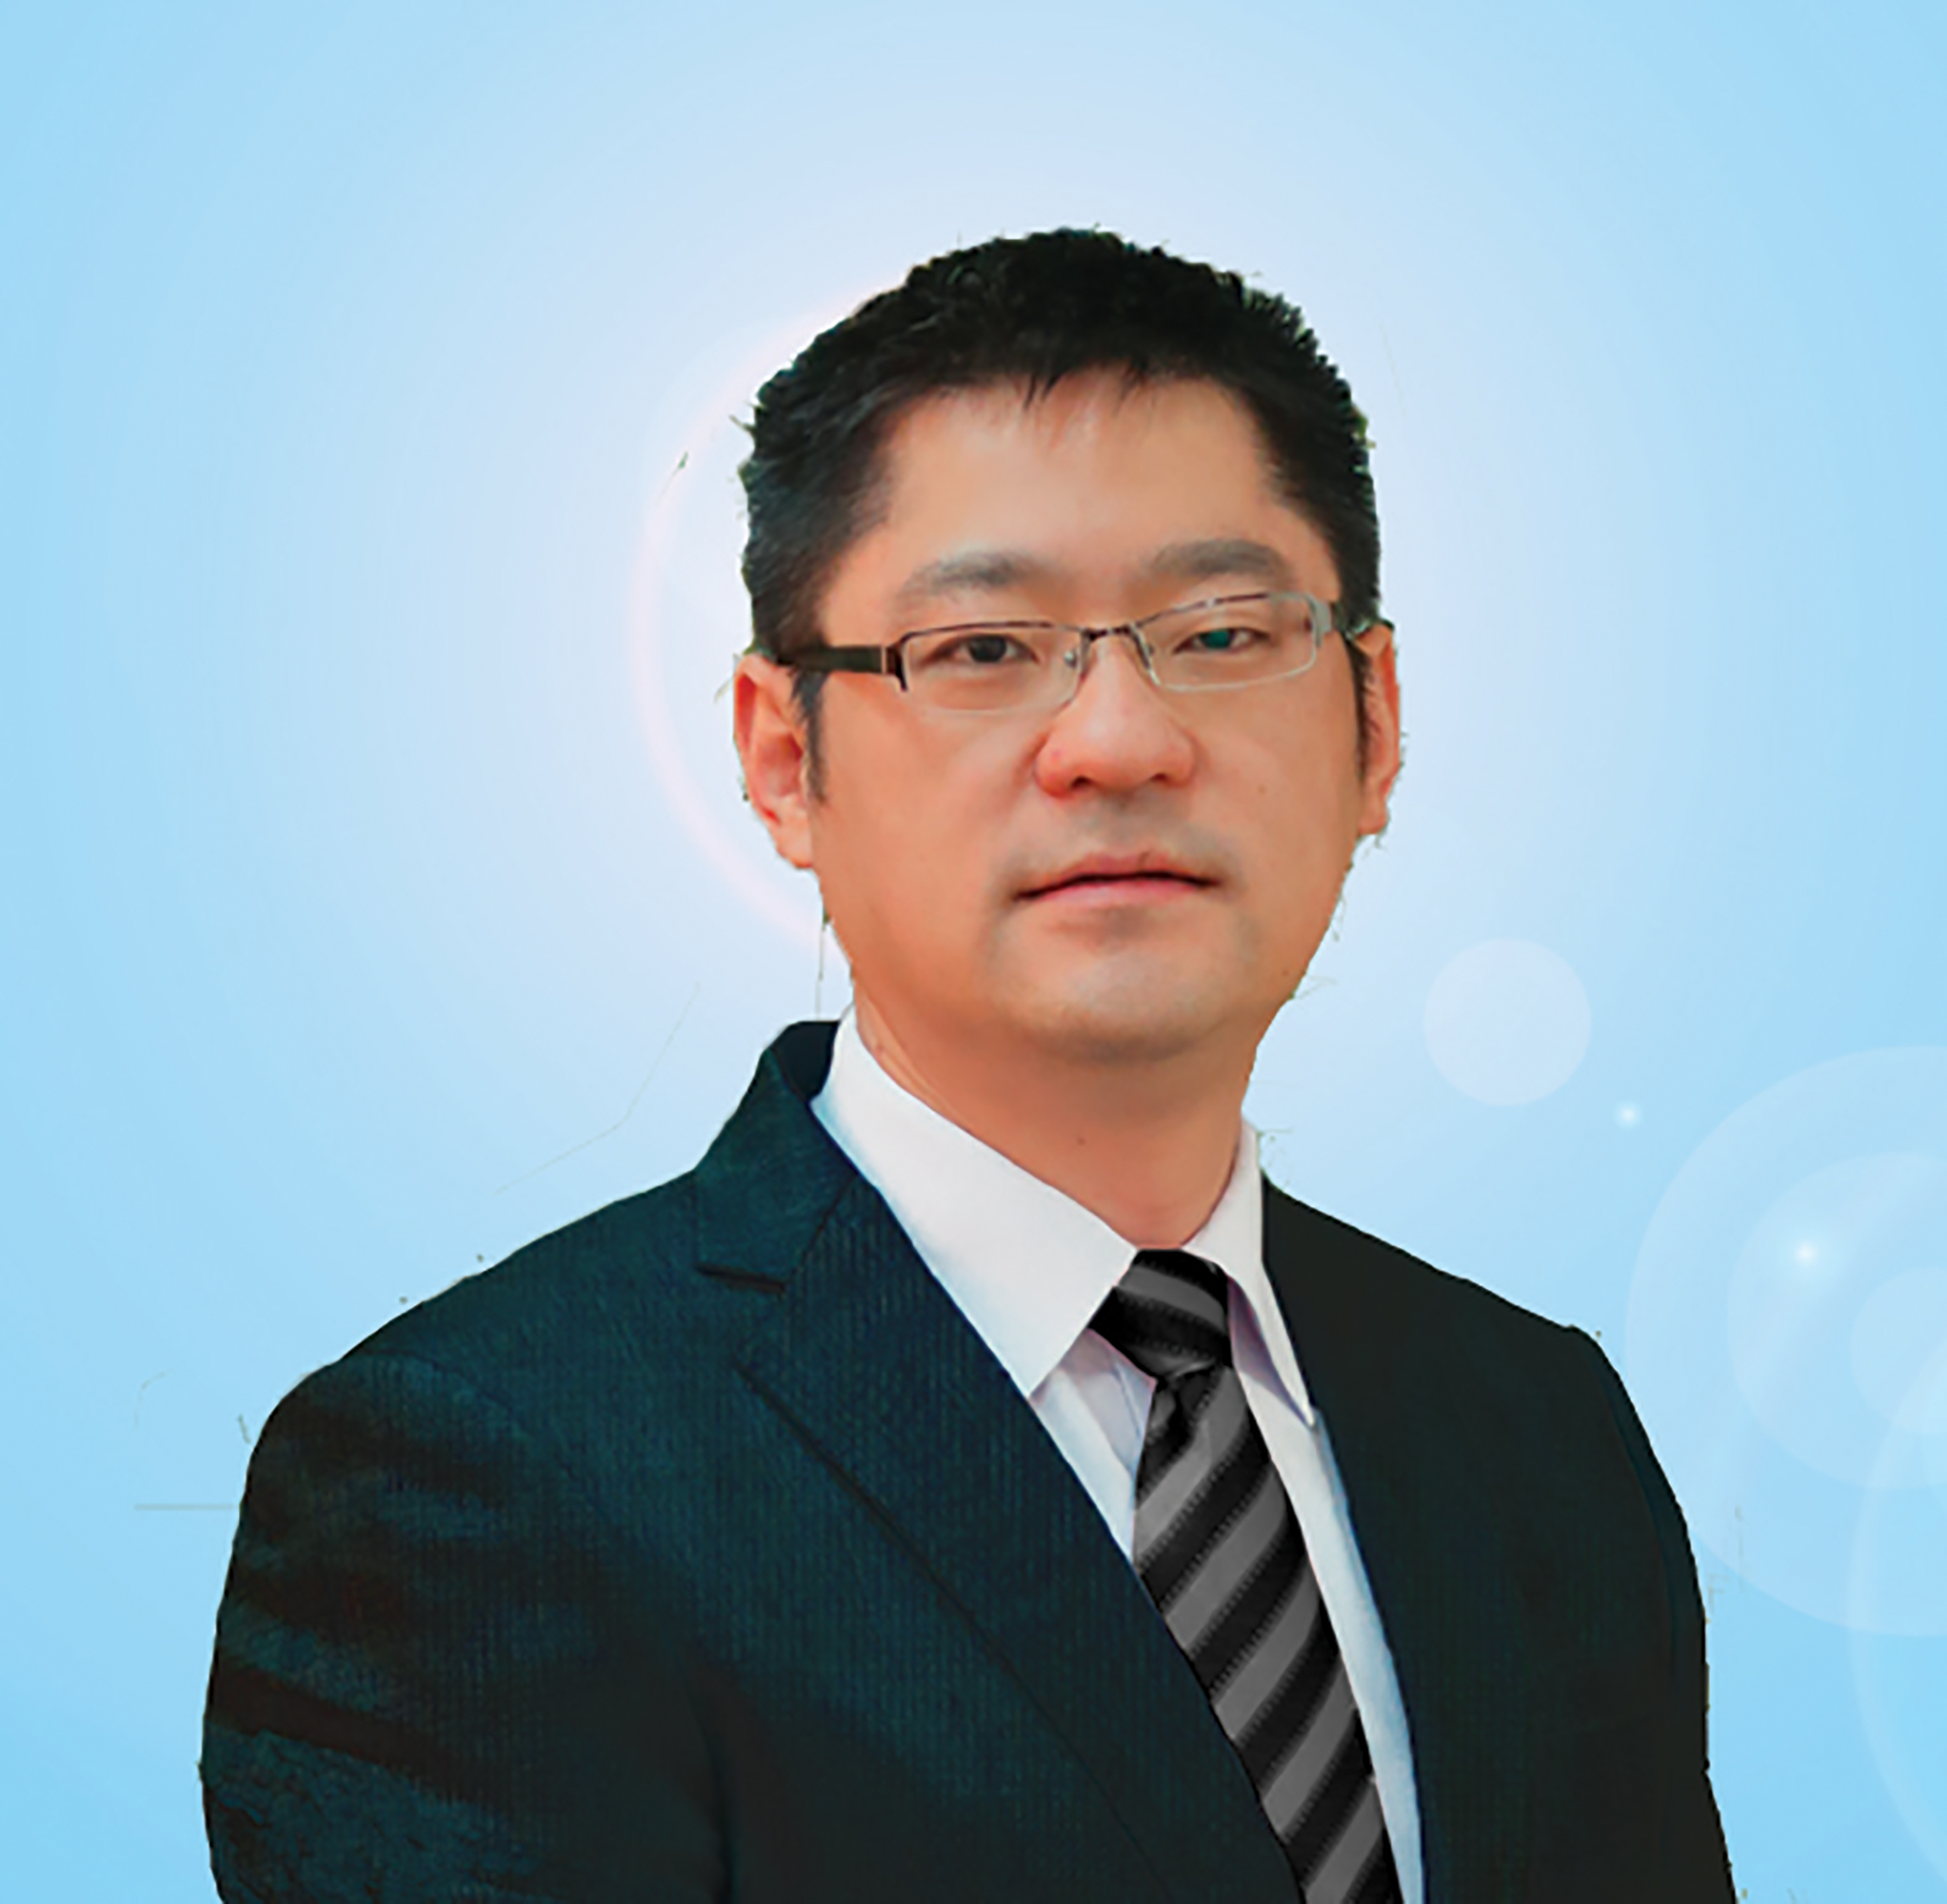 Mr Richie Cao Shi XuanExecutive Director and Deputy Chief Executive Officer